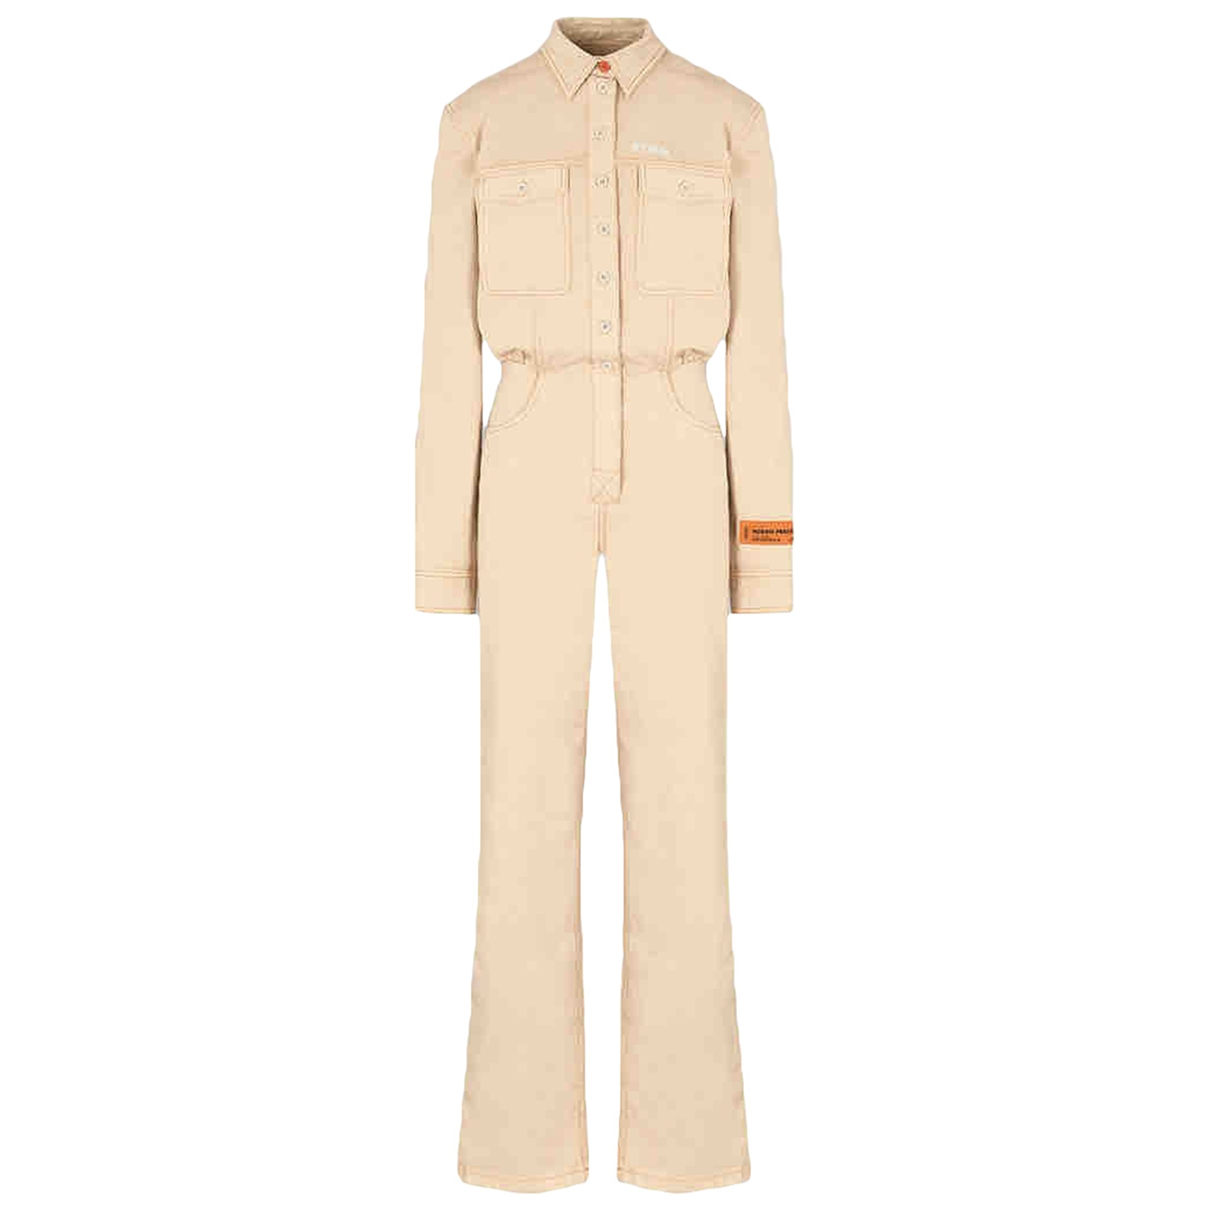 Heron Preston \N Beige Cotton jumpsuit for Women M International